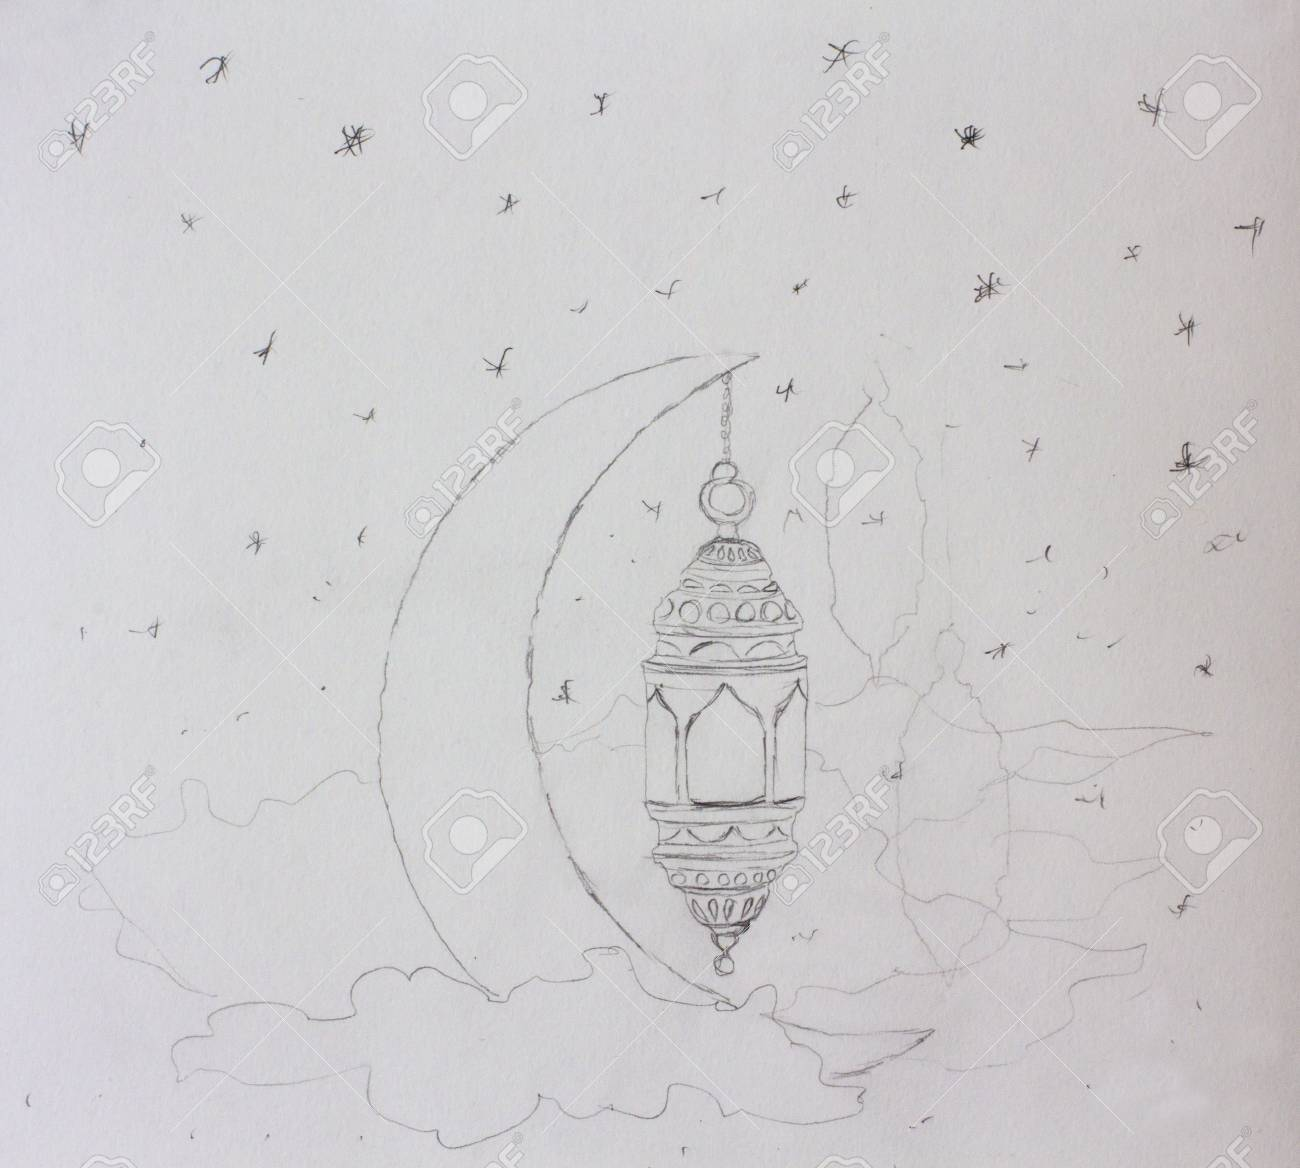 Pencil sketch ramadan kareem greeting template islamic crescent and arabic lantern painting illustration artwork on paper